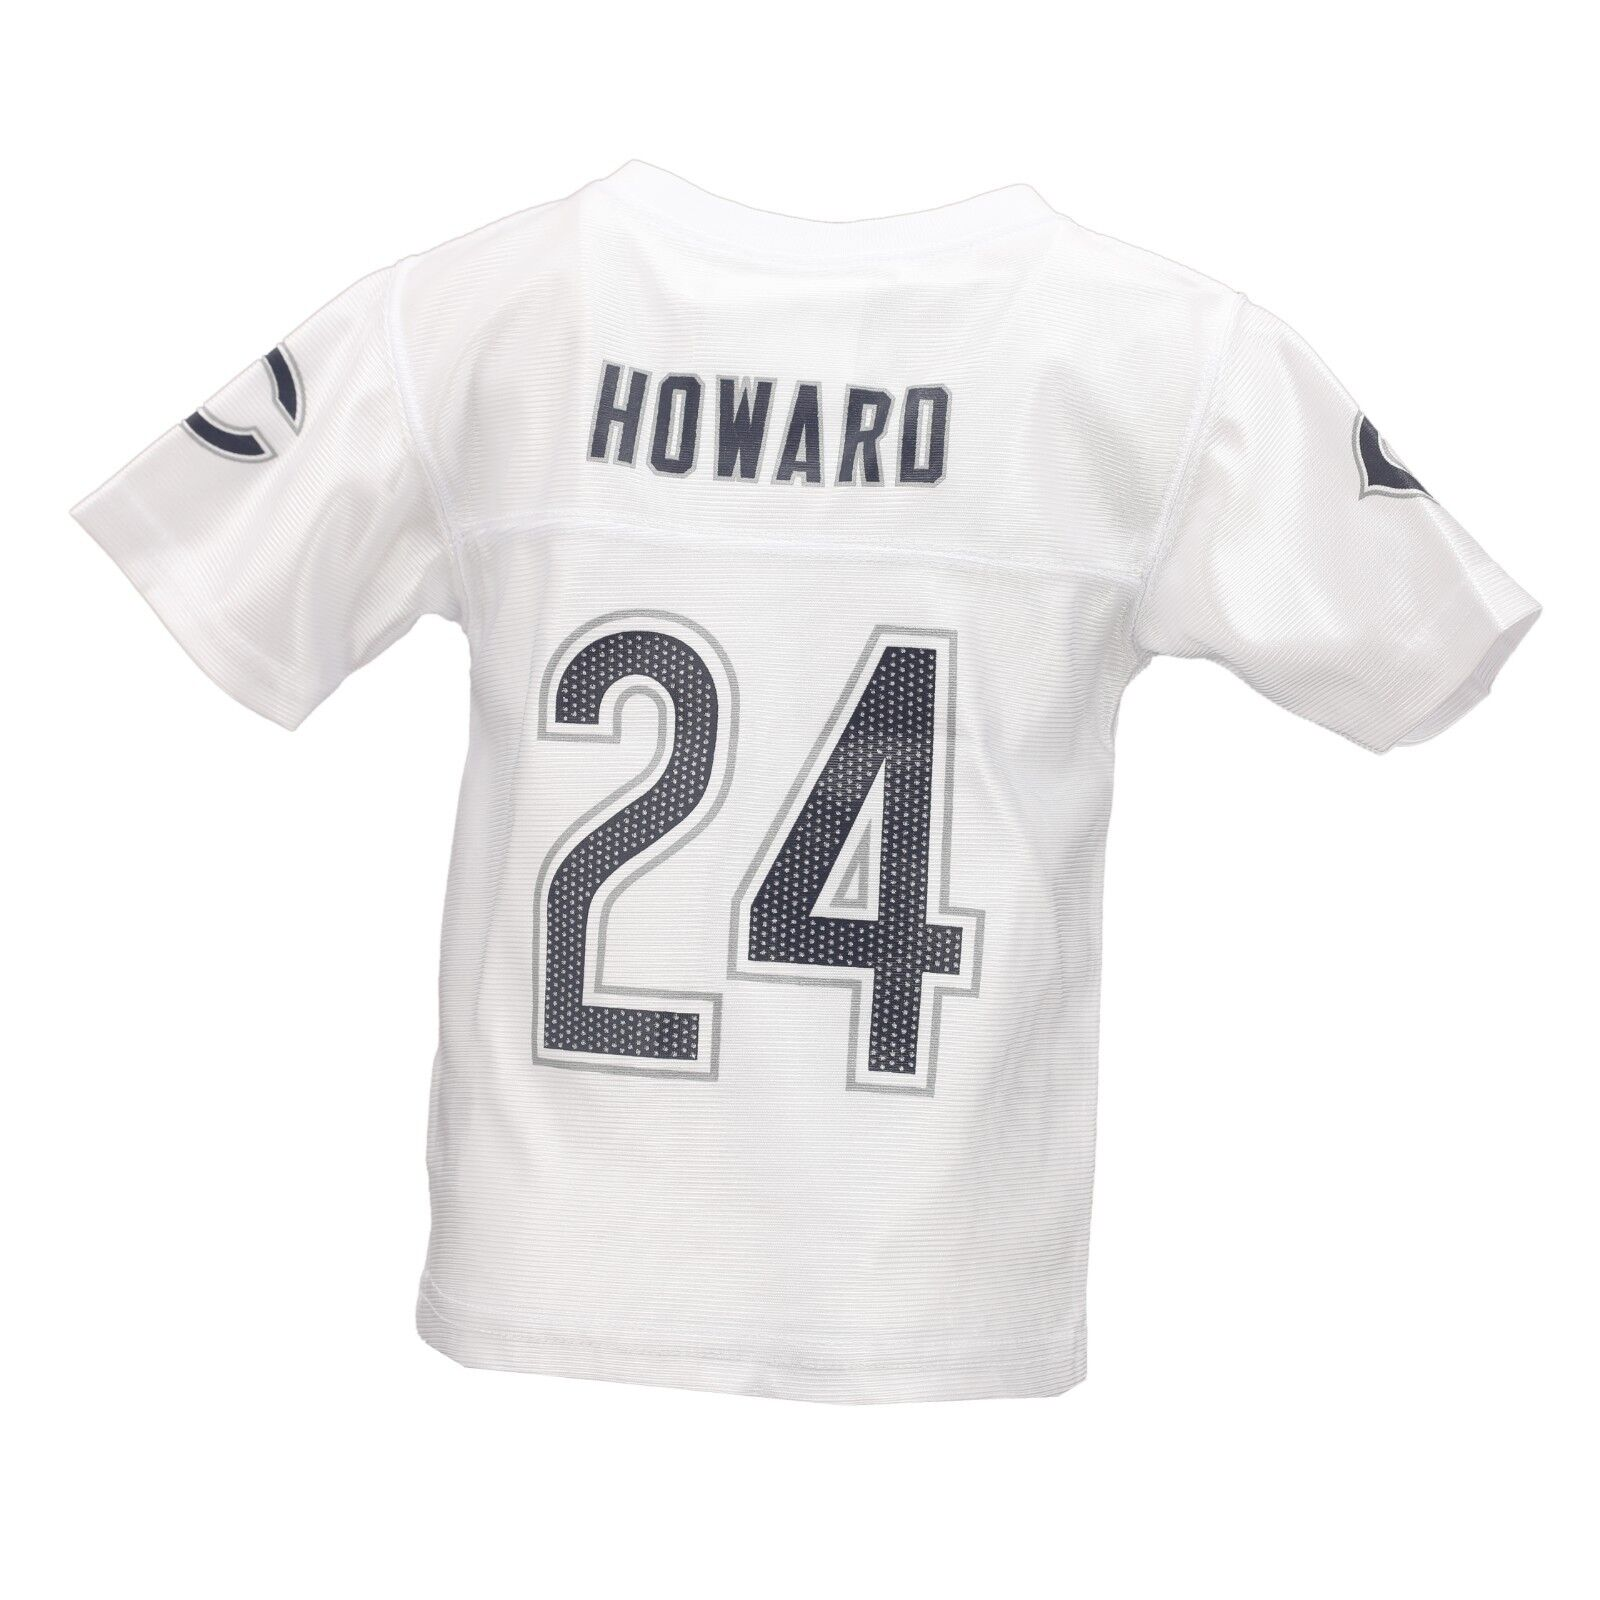 brand new a31b9 ebeff Details about Chicago Bears Official NFL Baby Infant Size Jordan Howard  Jersey New with Tags